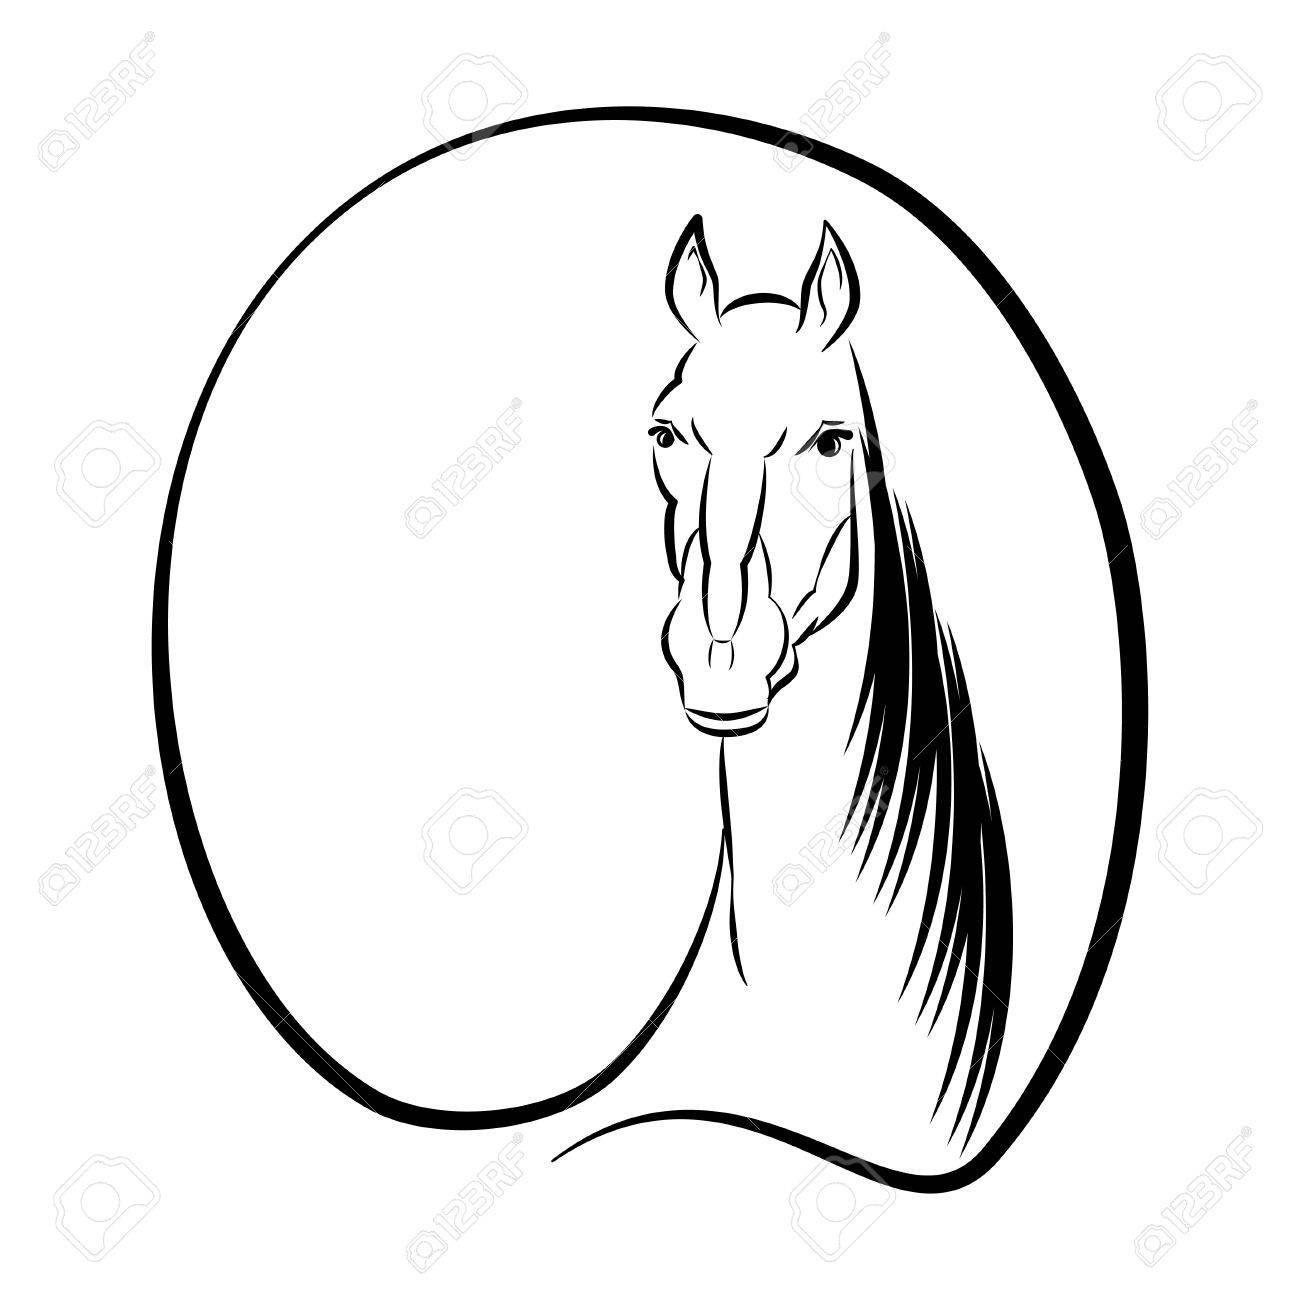 1300x1300 Horse Black And White Drawing With Space For Text Vector